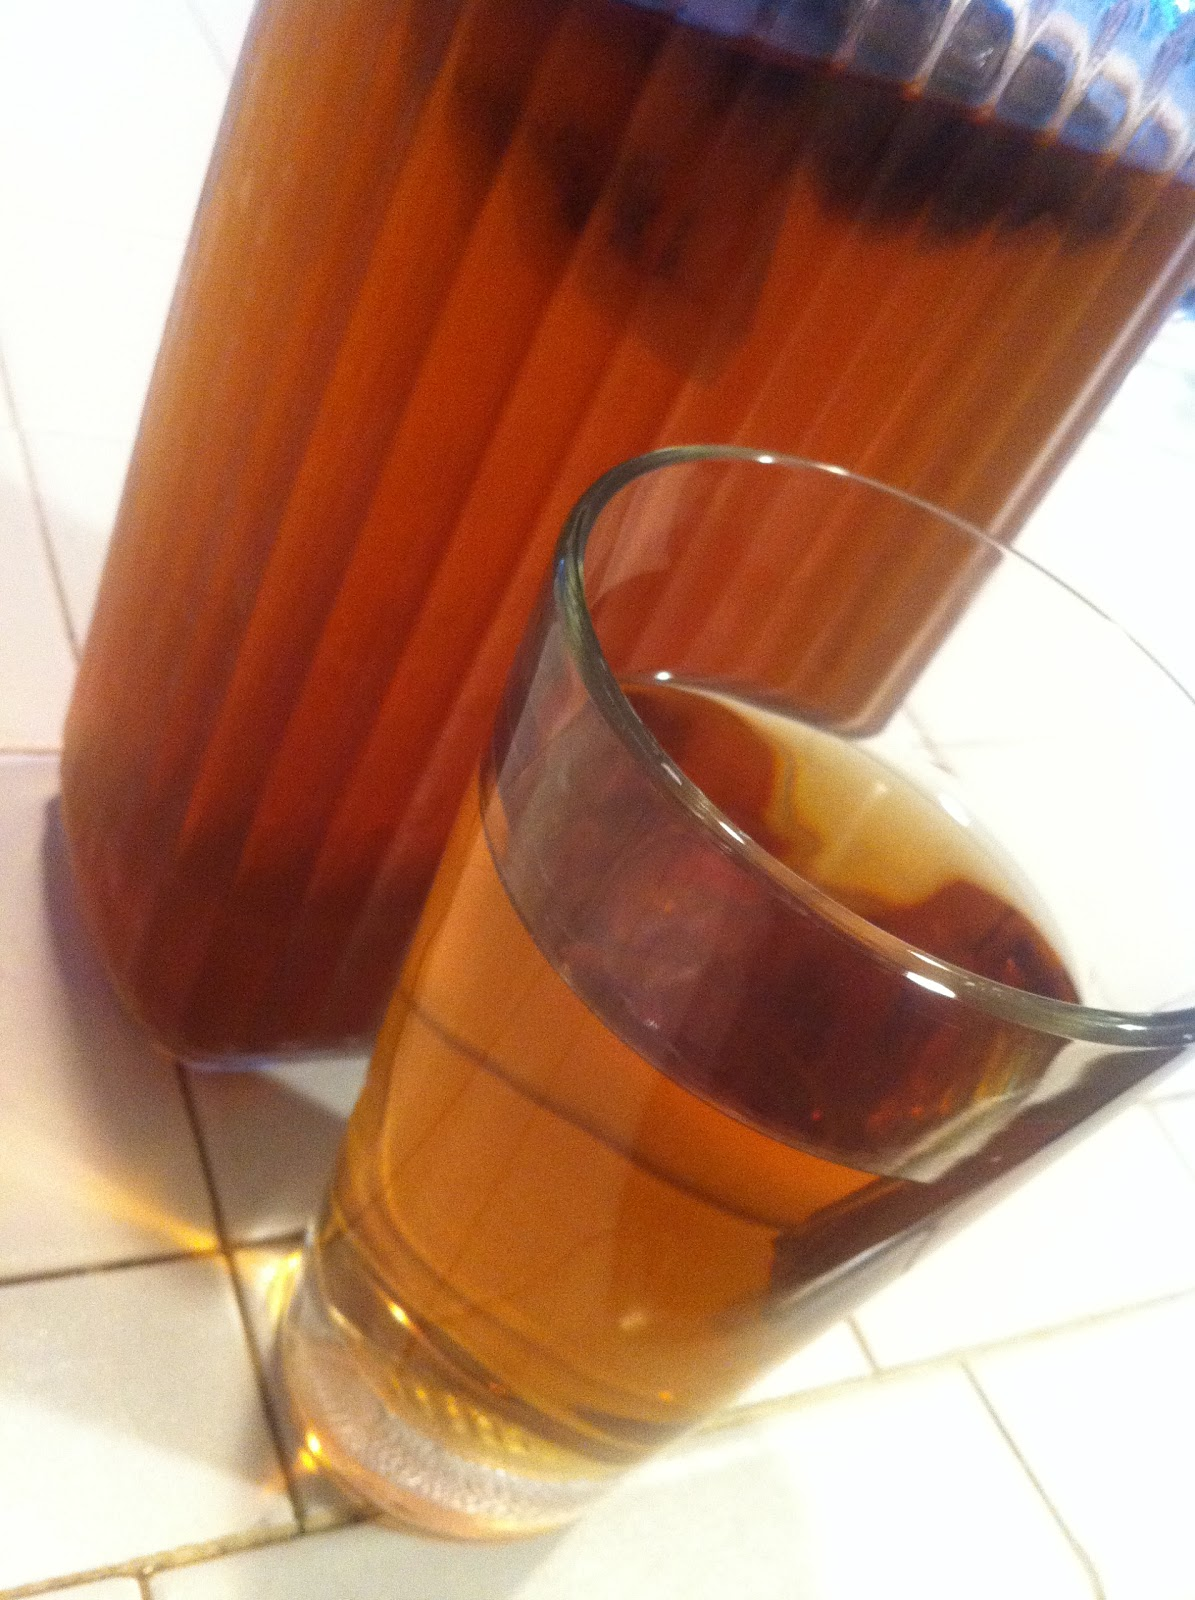 Homemade Mugicha (Japanese Roasted Barley Tea) Recipes — Dishmaps